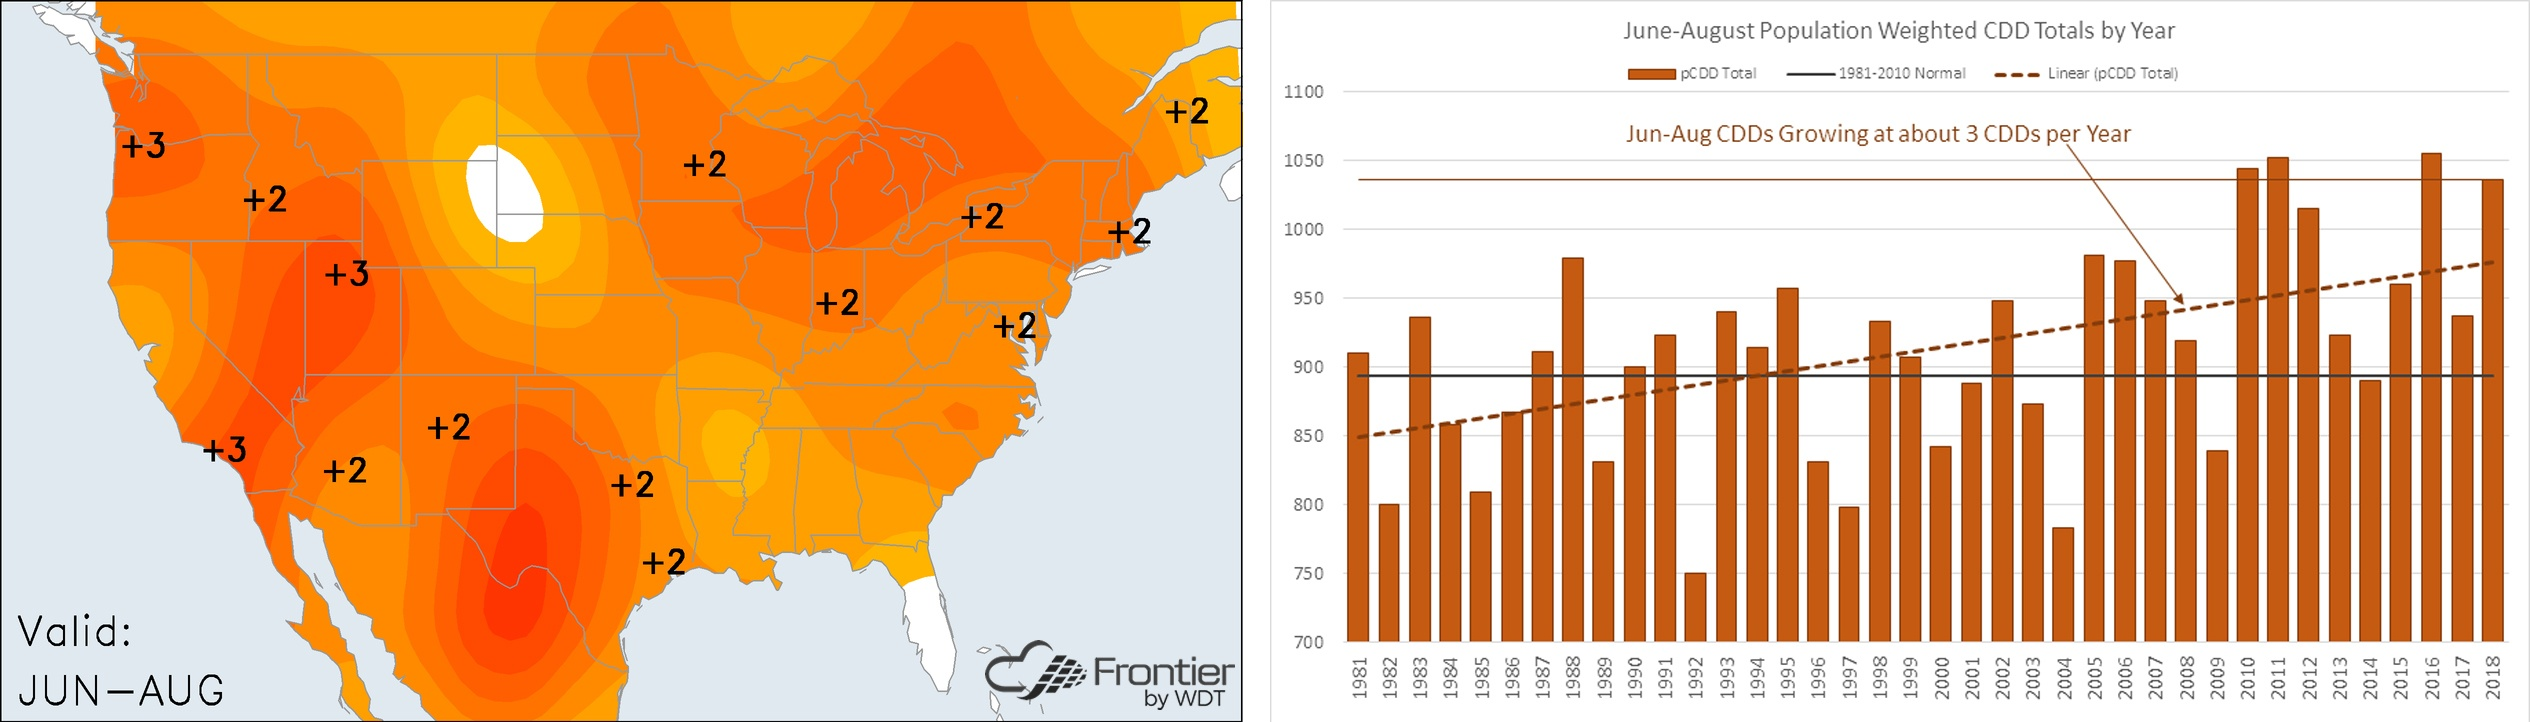 Jun-Aug Temperature Anomalies and Cooling Degree Days